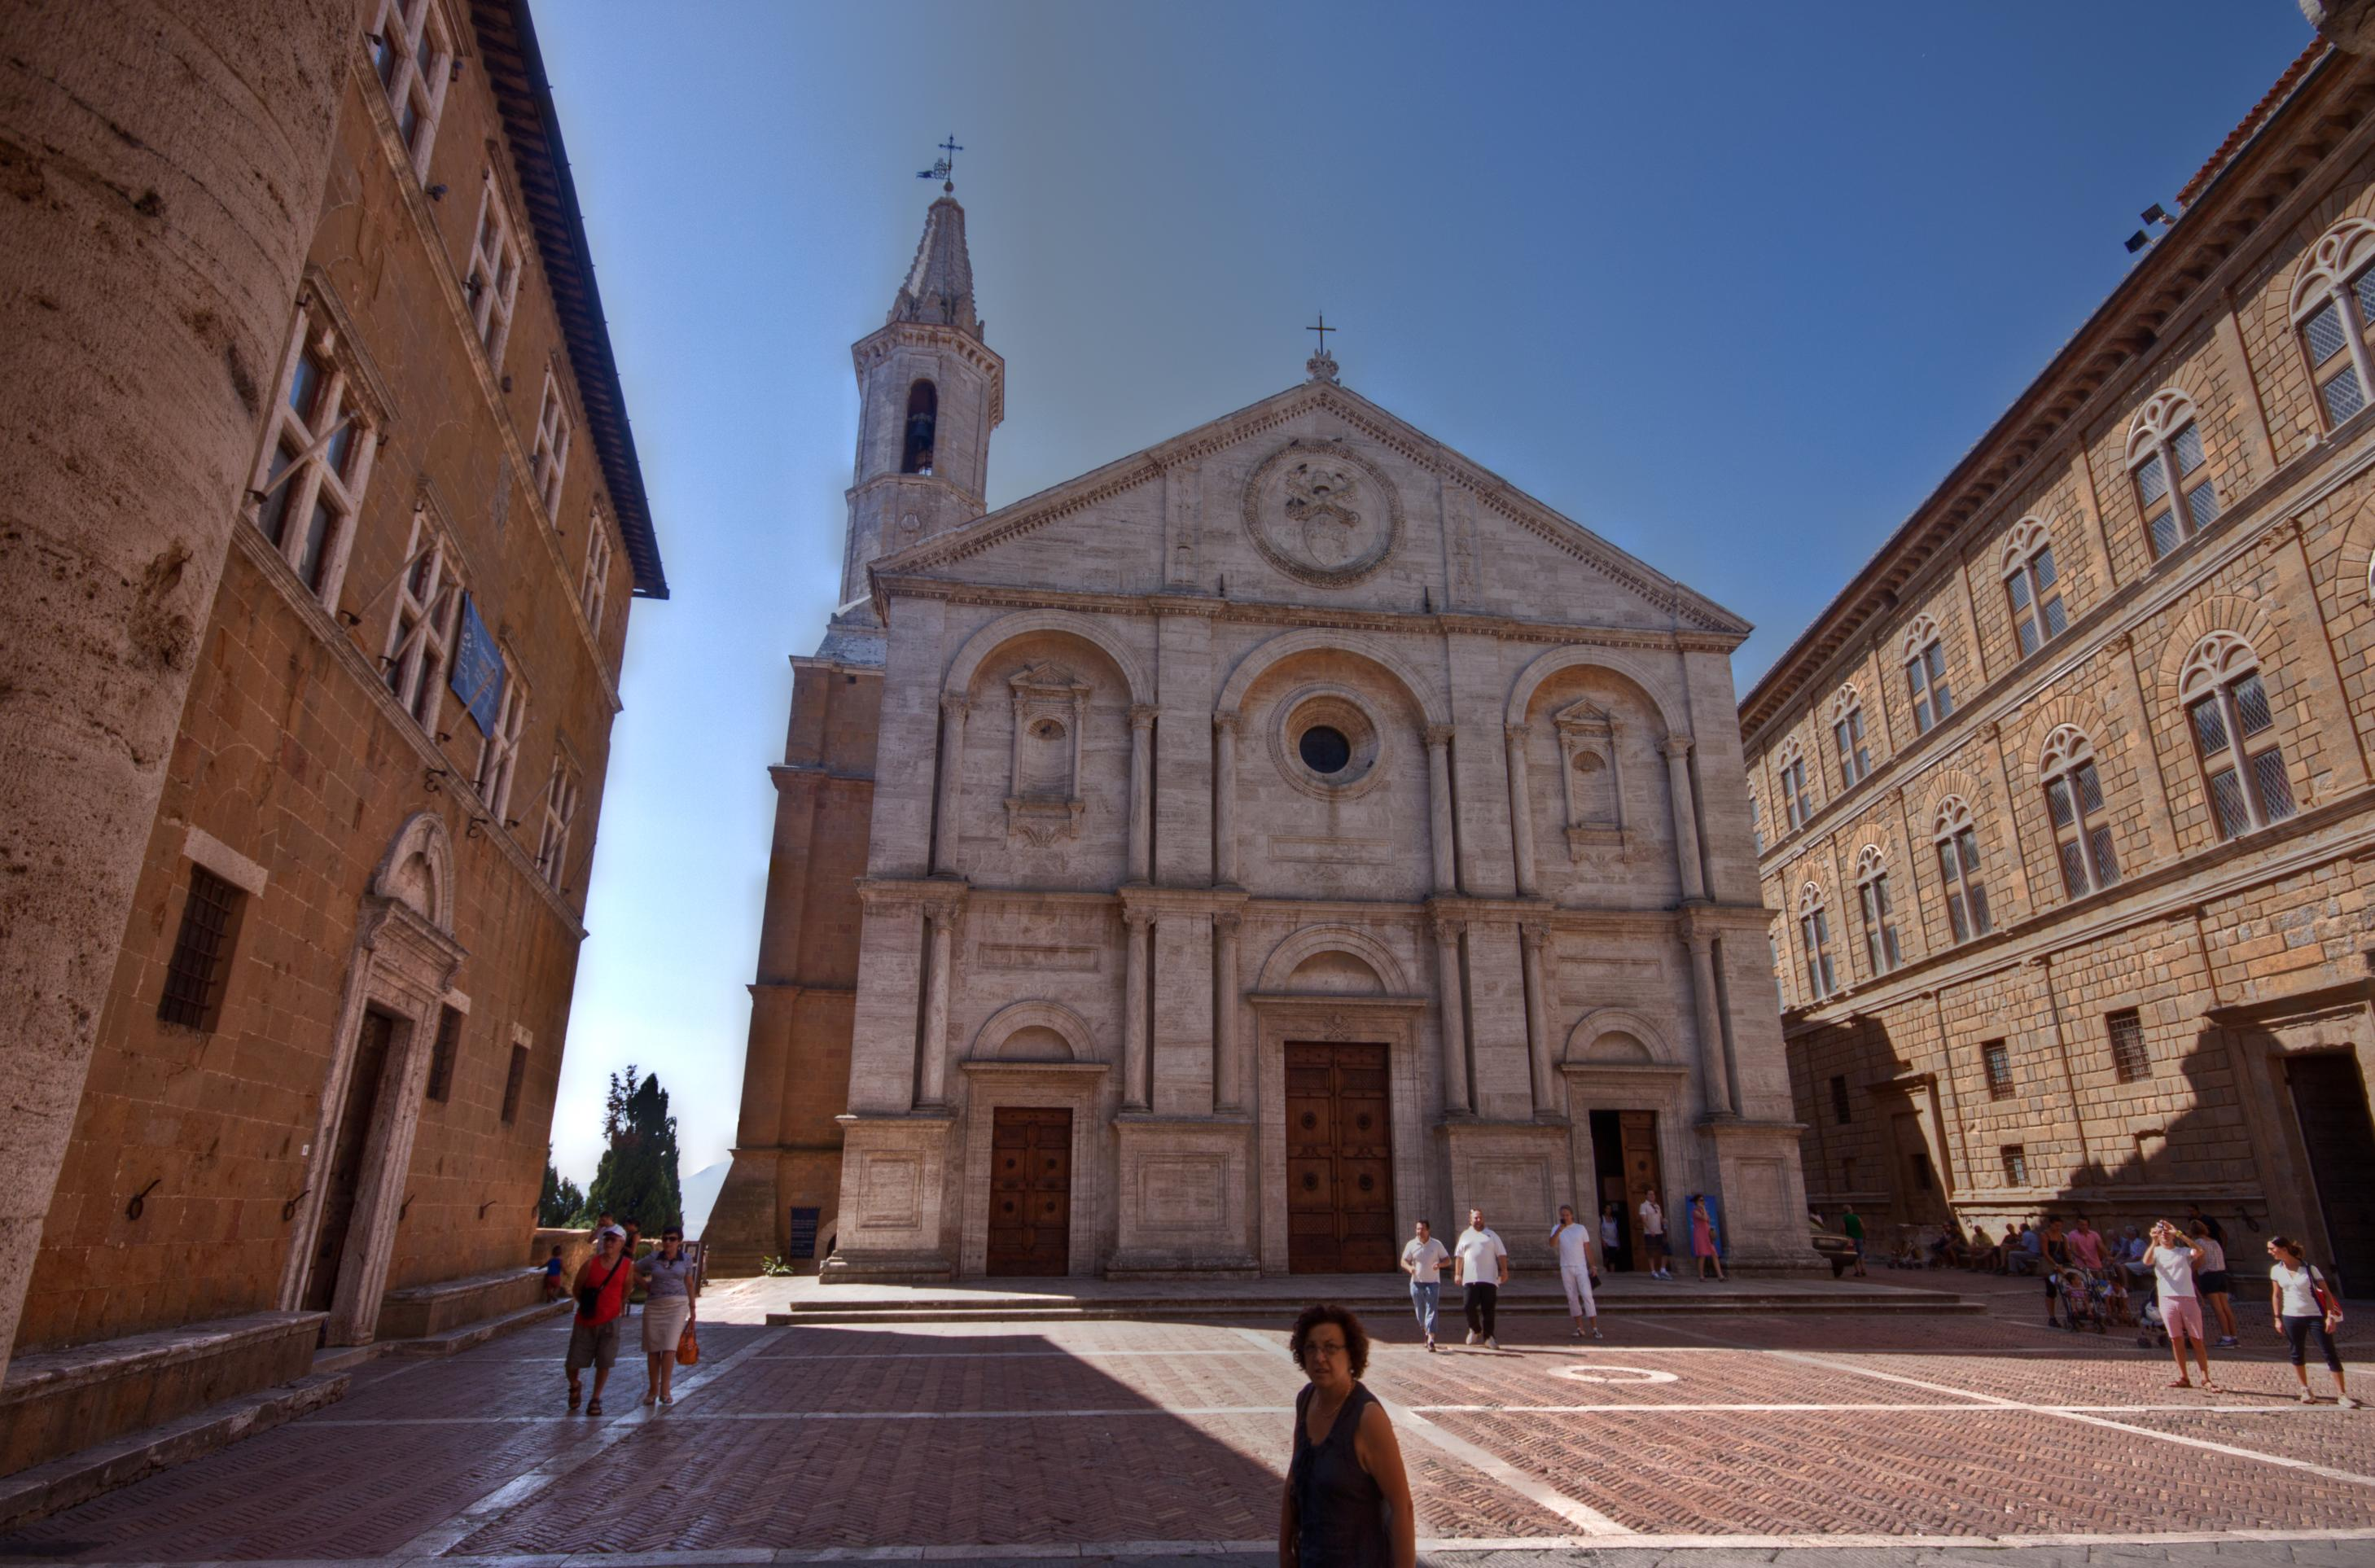 Pienza - The ideal city - Tuscany, Beautiful Everywhere